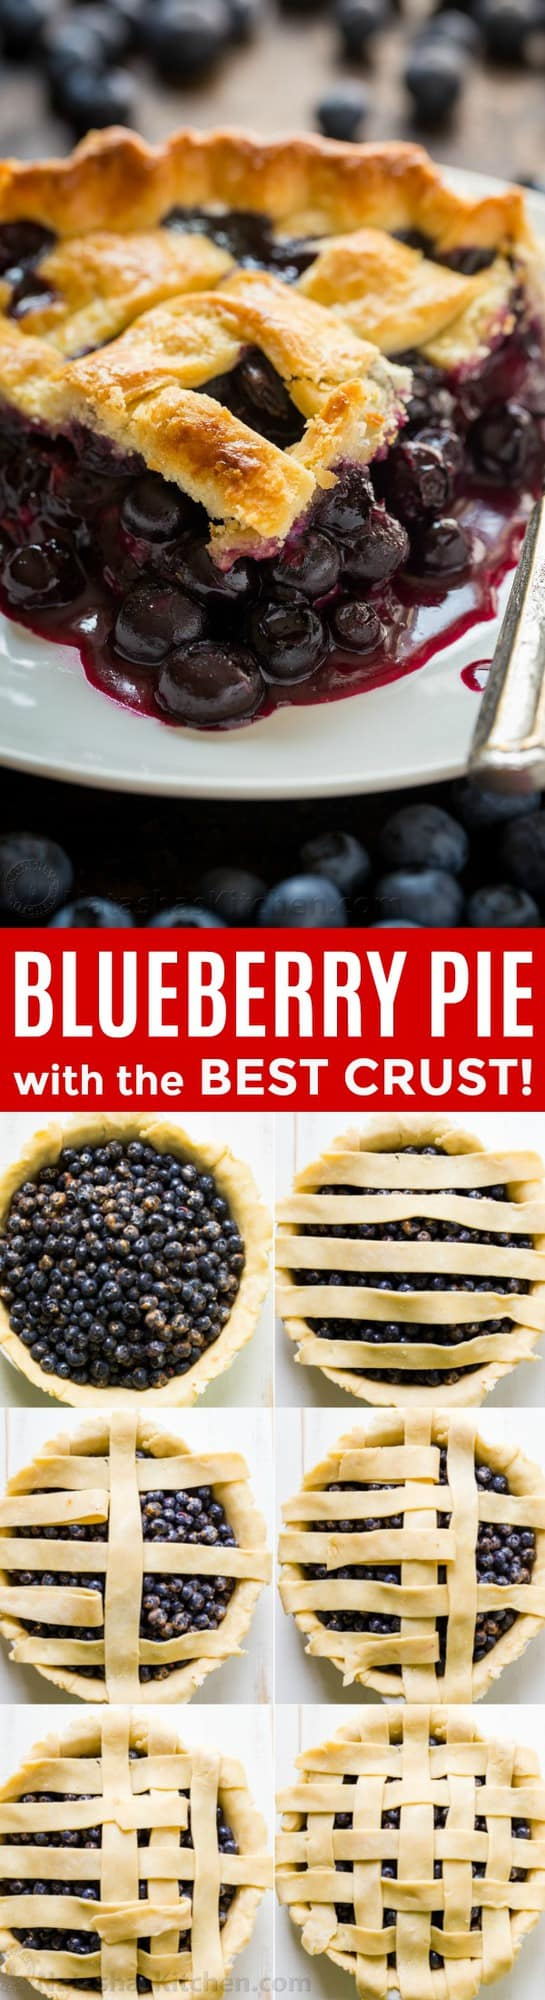 The ultimate Blueberry Pie Recipe! Making a pie from scratch is so rewarding and this blueberry pie does not disappoint. The filling is bursting with sweet, juicy blueberries and tastes amazing with vanilla ice cream. | natashaskitchen.com